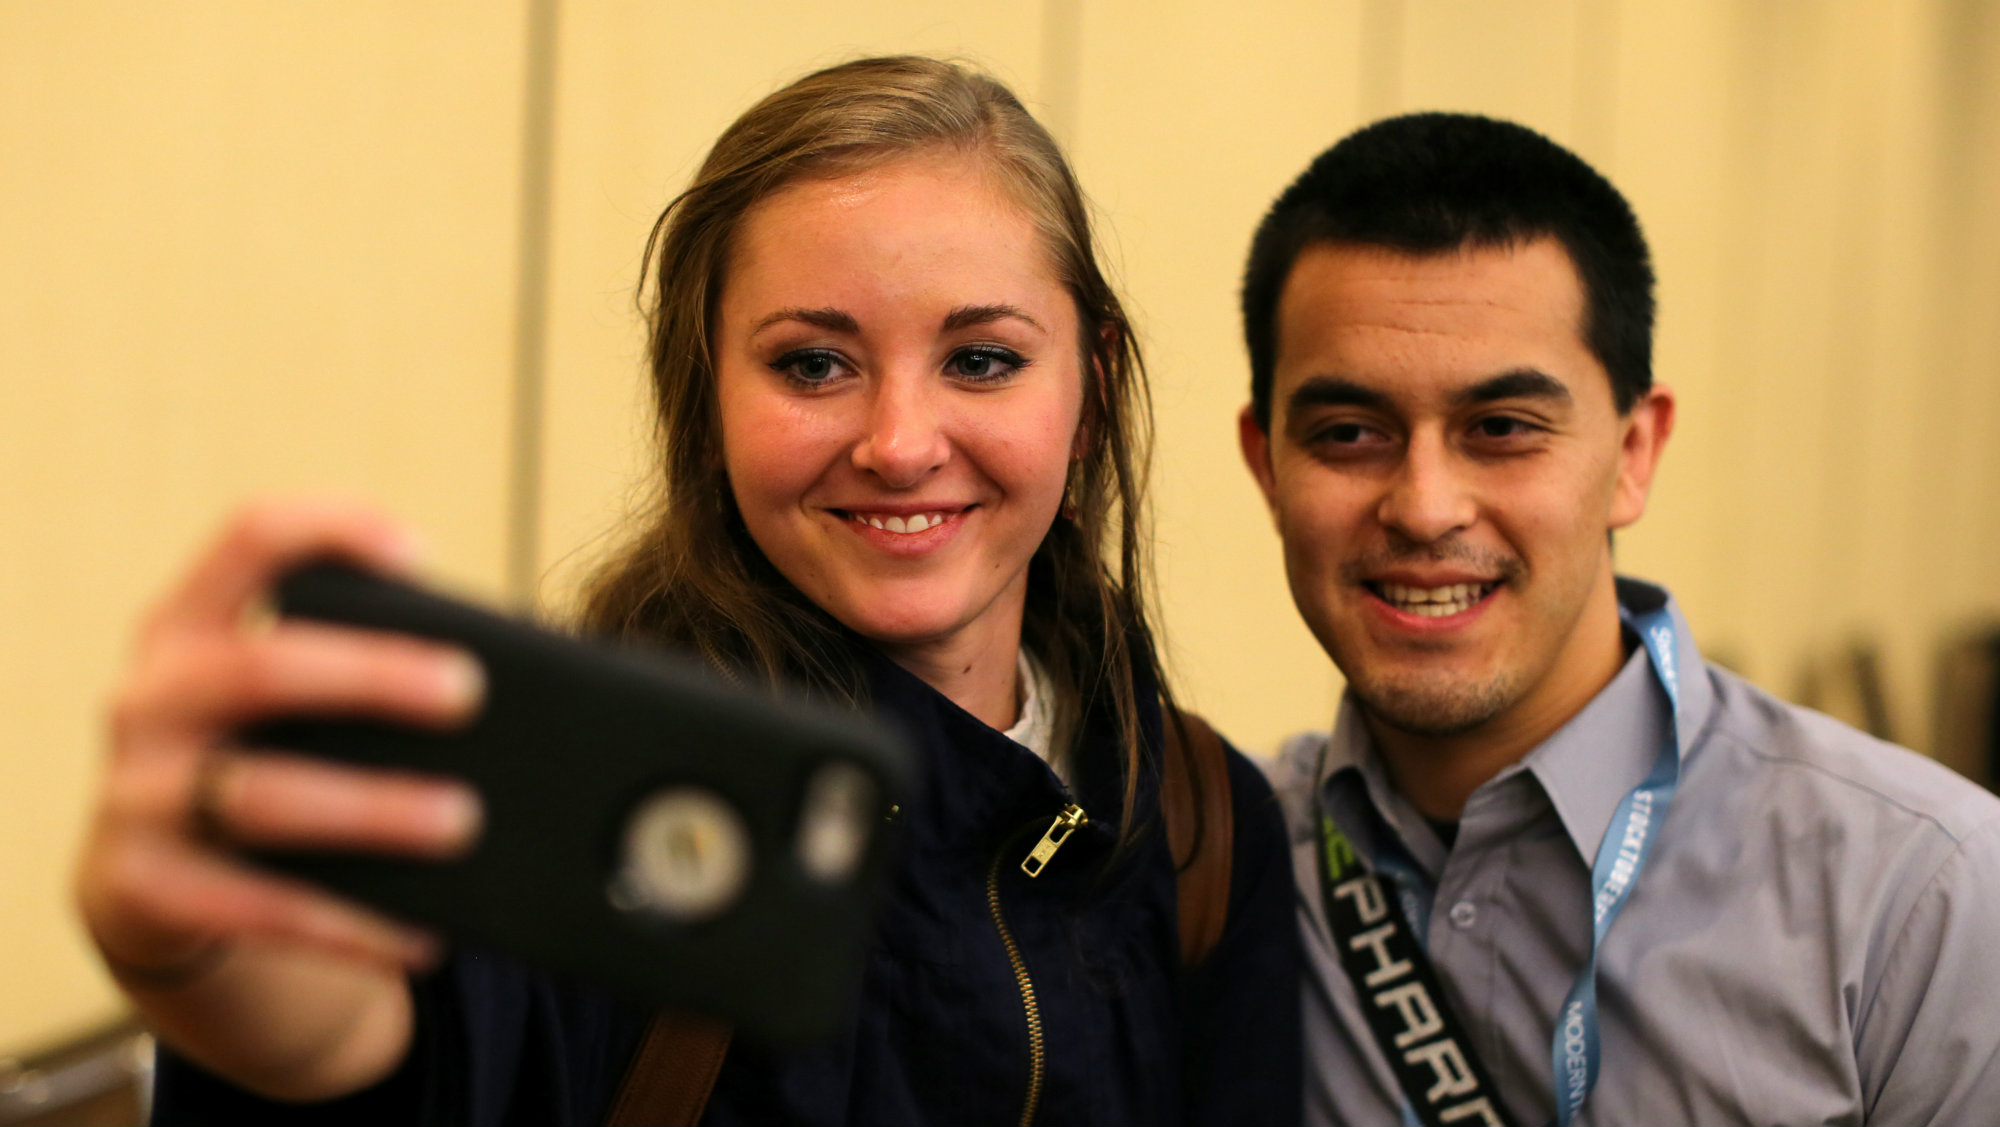 Millennial stock blogger and trader Rachel Fox, 20, is asked to take a picture with a fan after speaking to a group of investors, tech nerds and stock traders at StockTwits annual Stocktoberfest in Coronado, California, U.S. October 14, 2016.